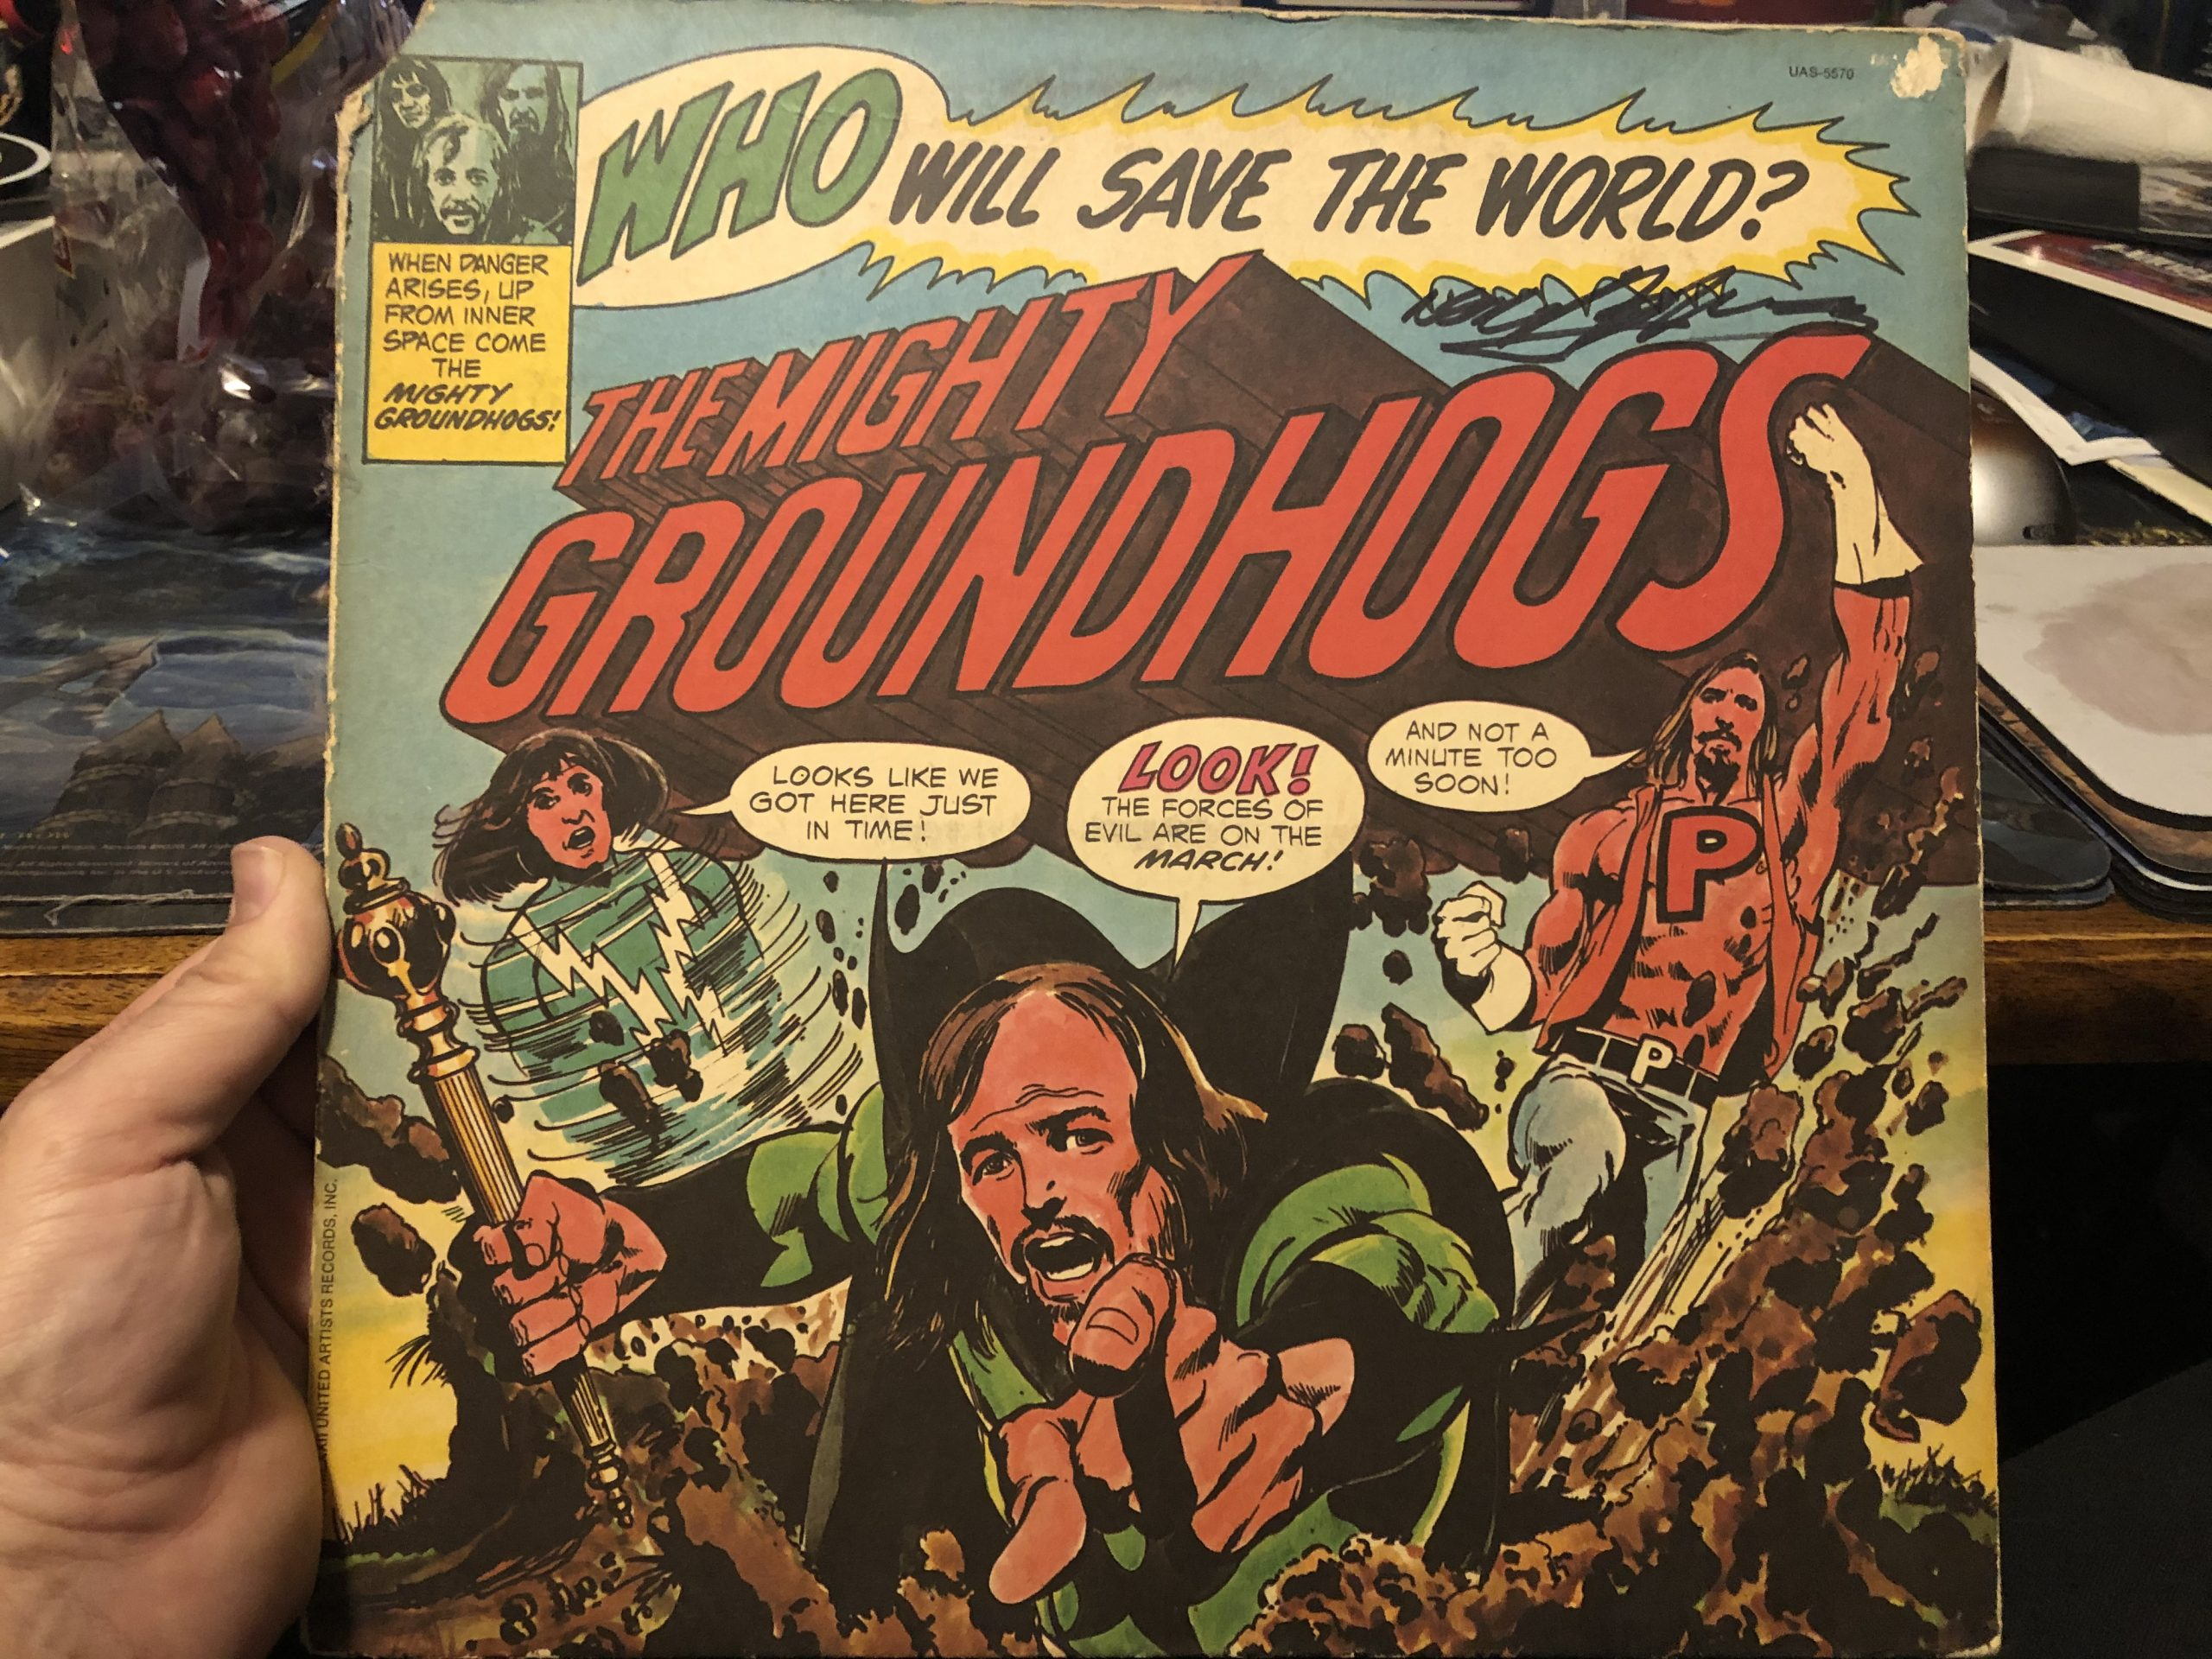 Neal Adams signed Who Will Save the World? Album by The Groundhogs